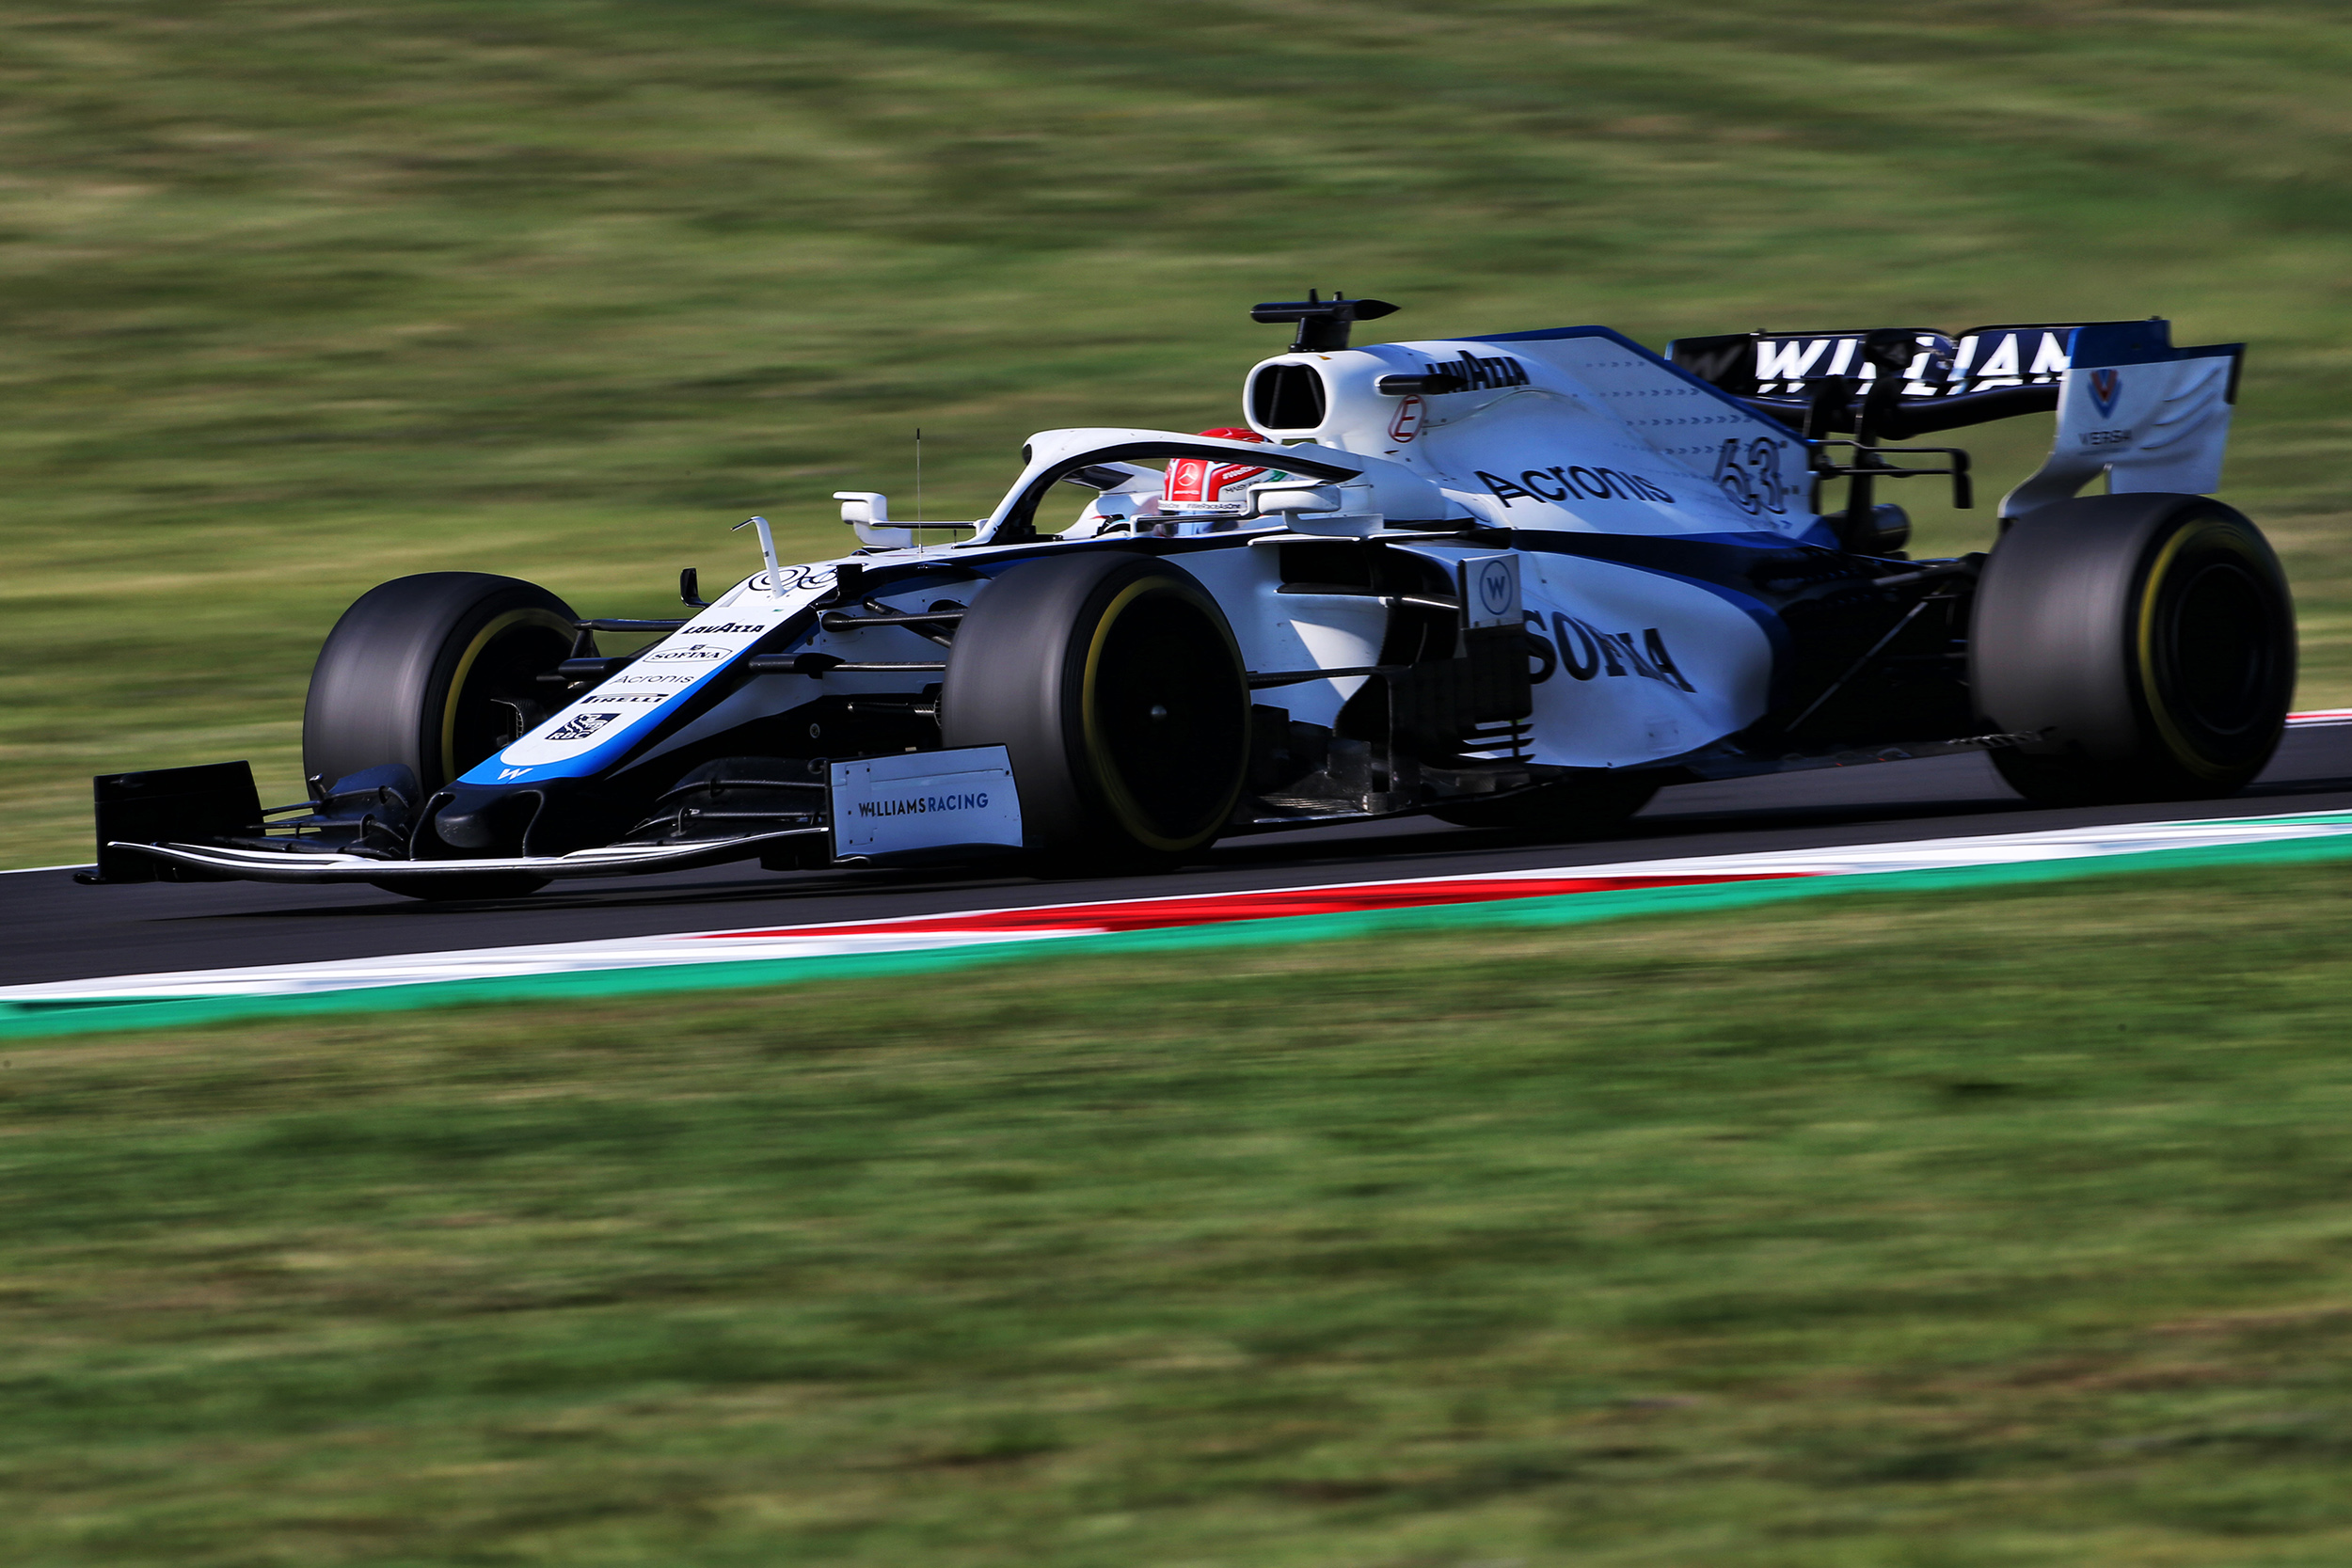 George Russell briga pelos pontos no GP da Toscana - Foto: Williams Racing